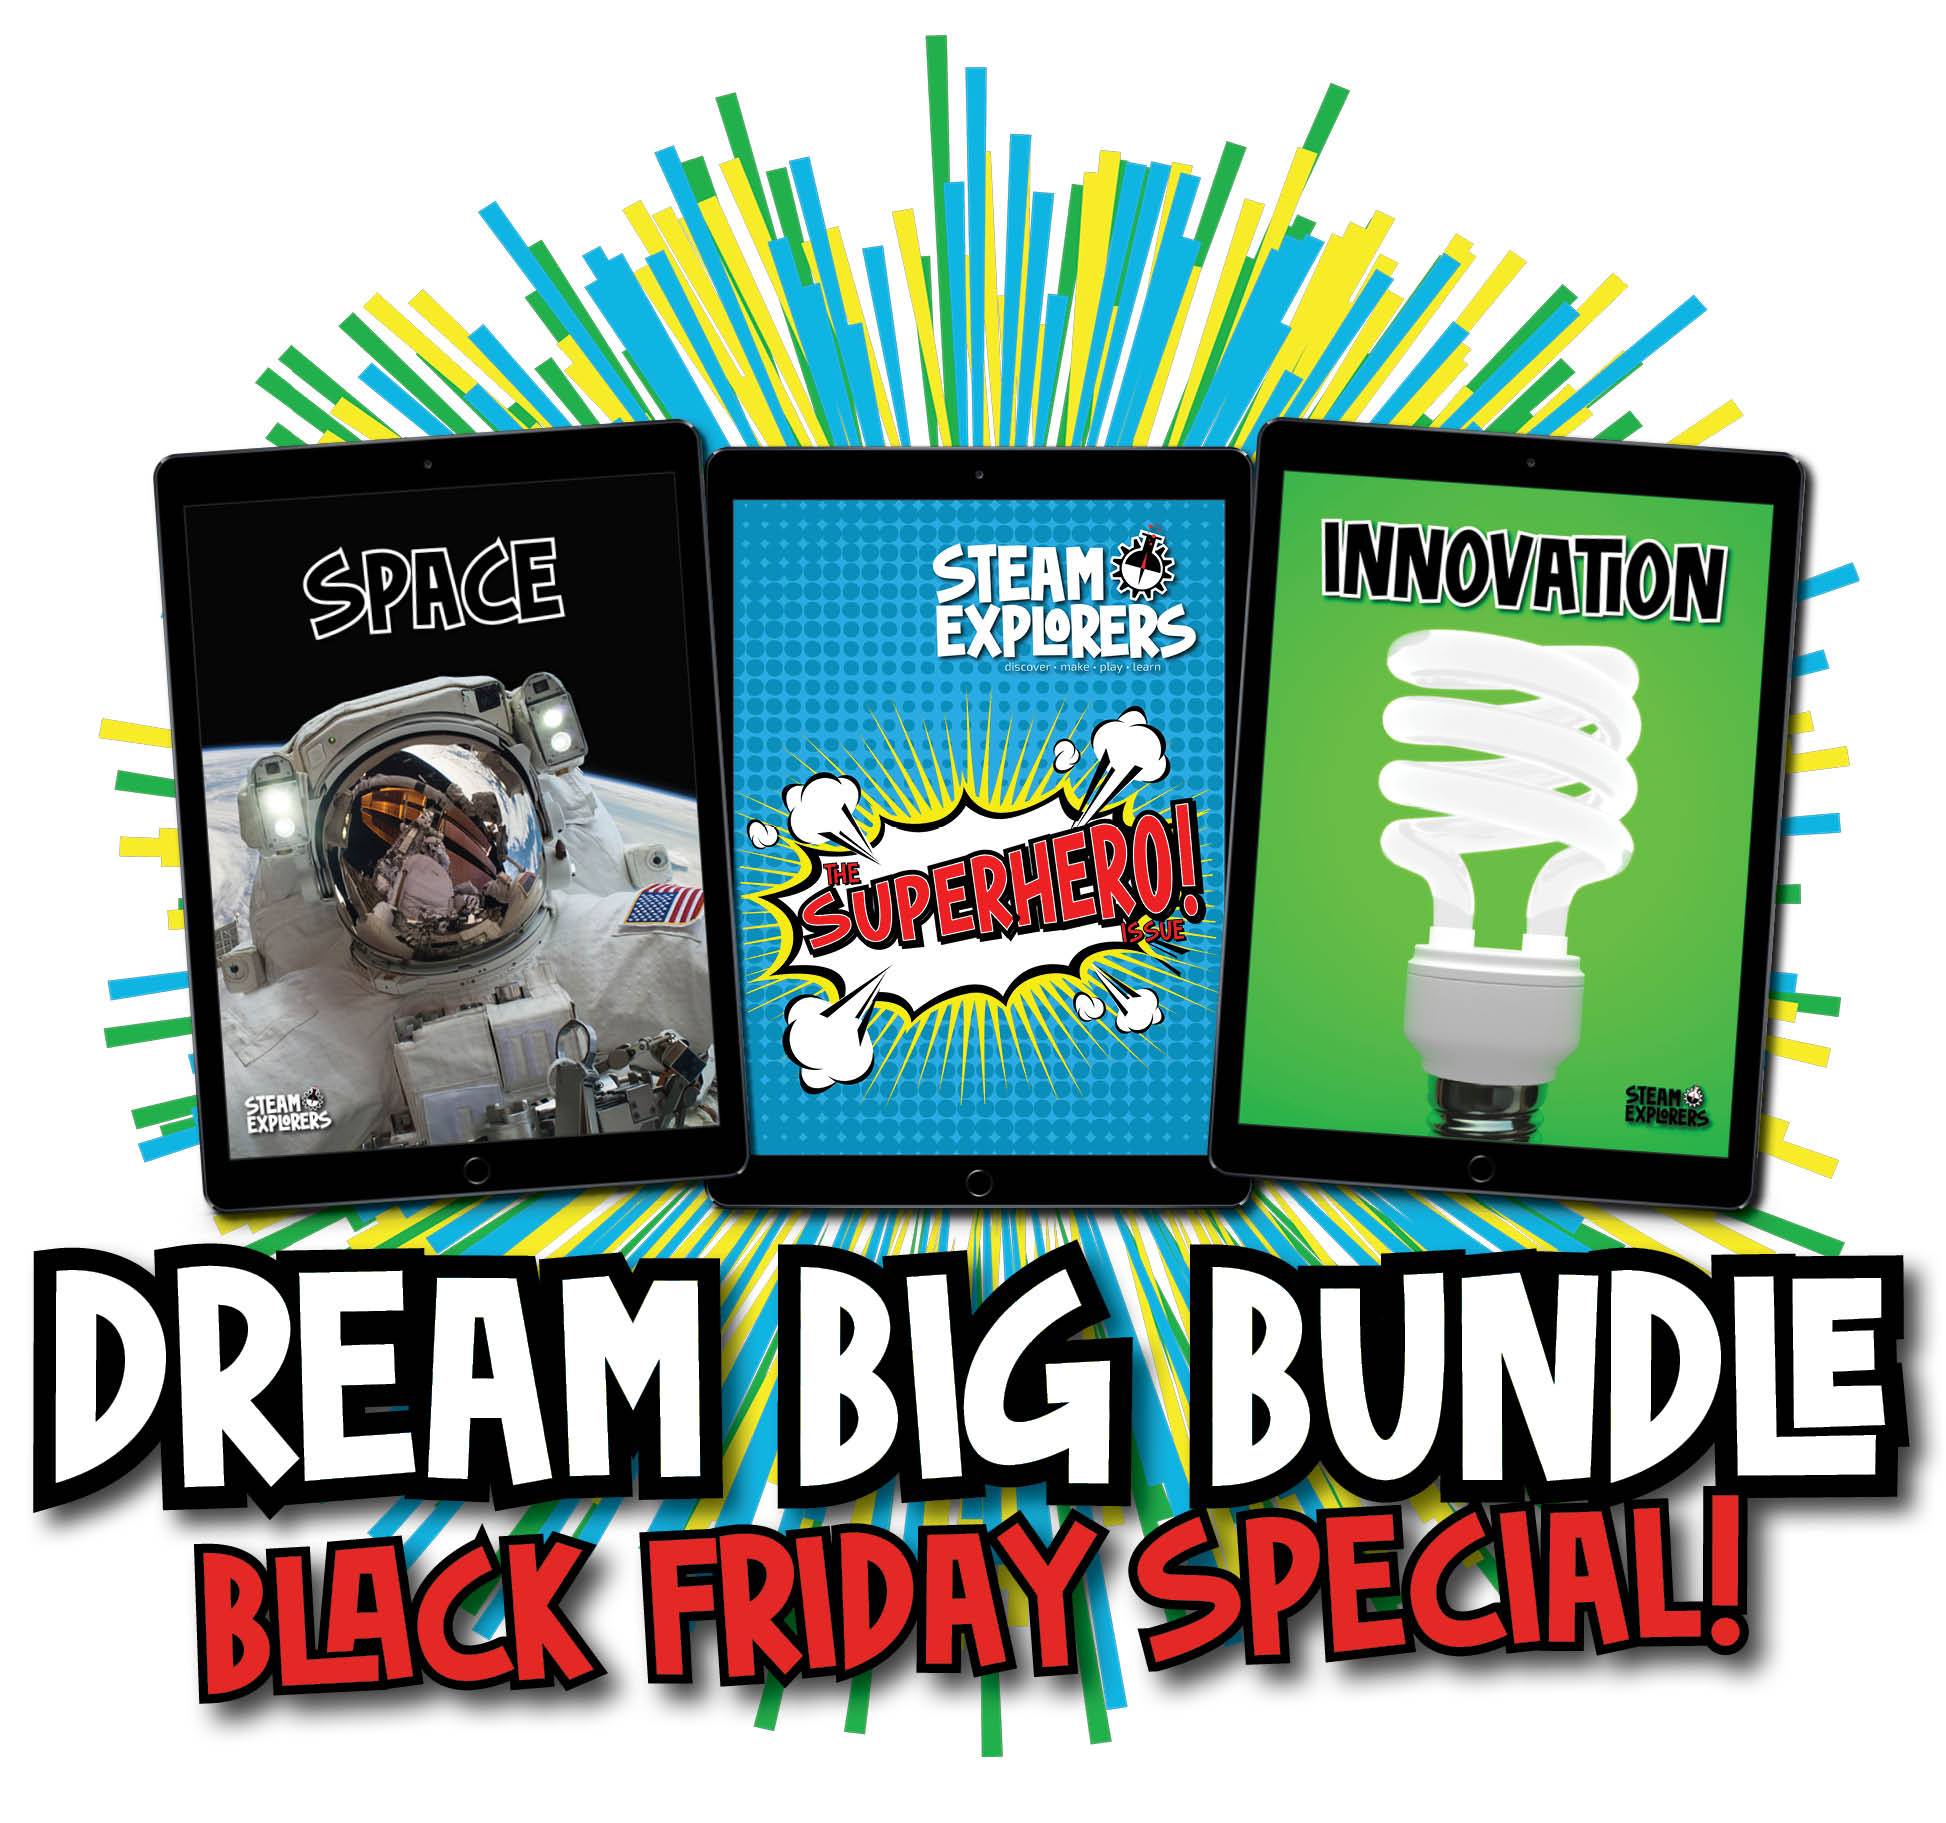 Dream Big Bundle Covers Explosion Black Friday Special horizontal